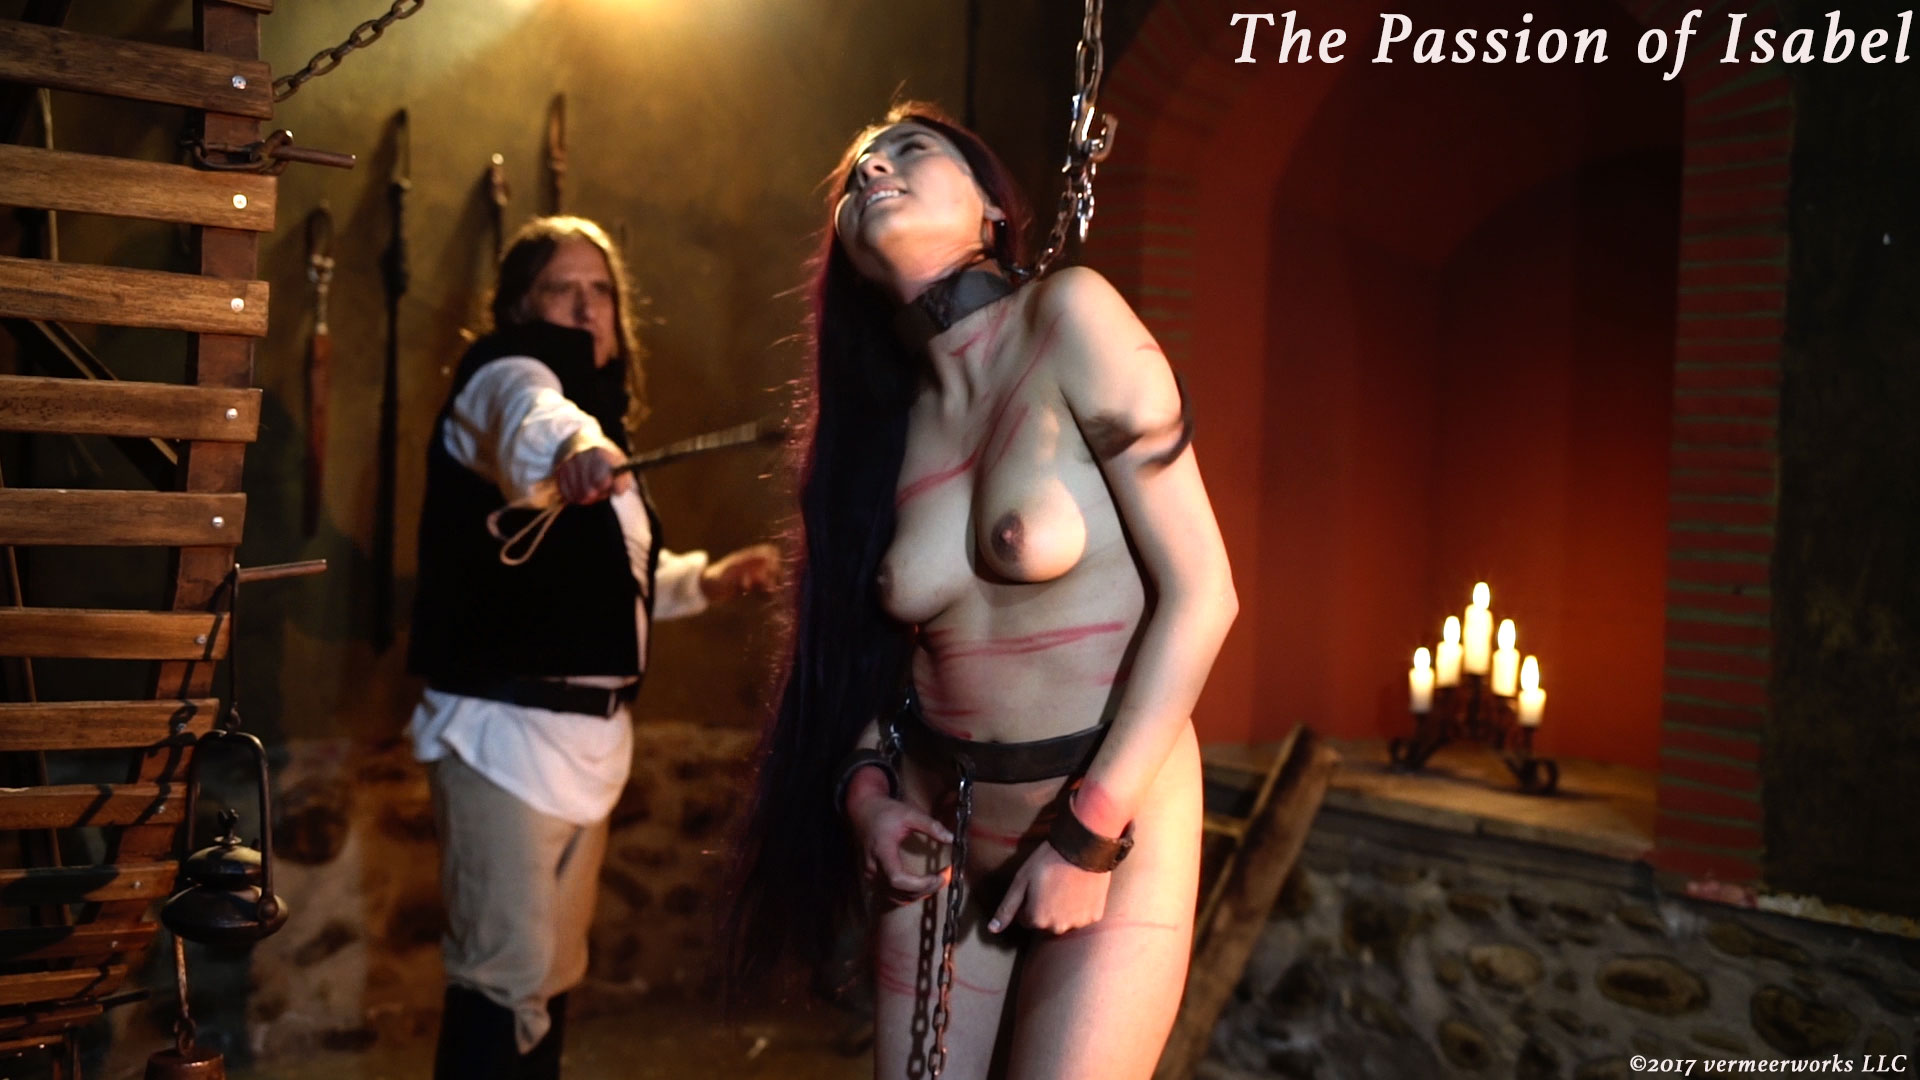 Nude women whipping scenes from movies